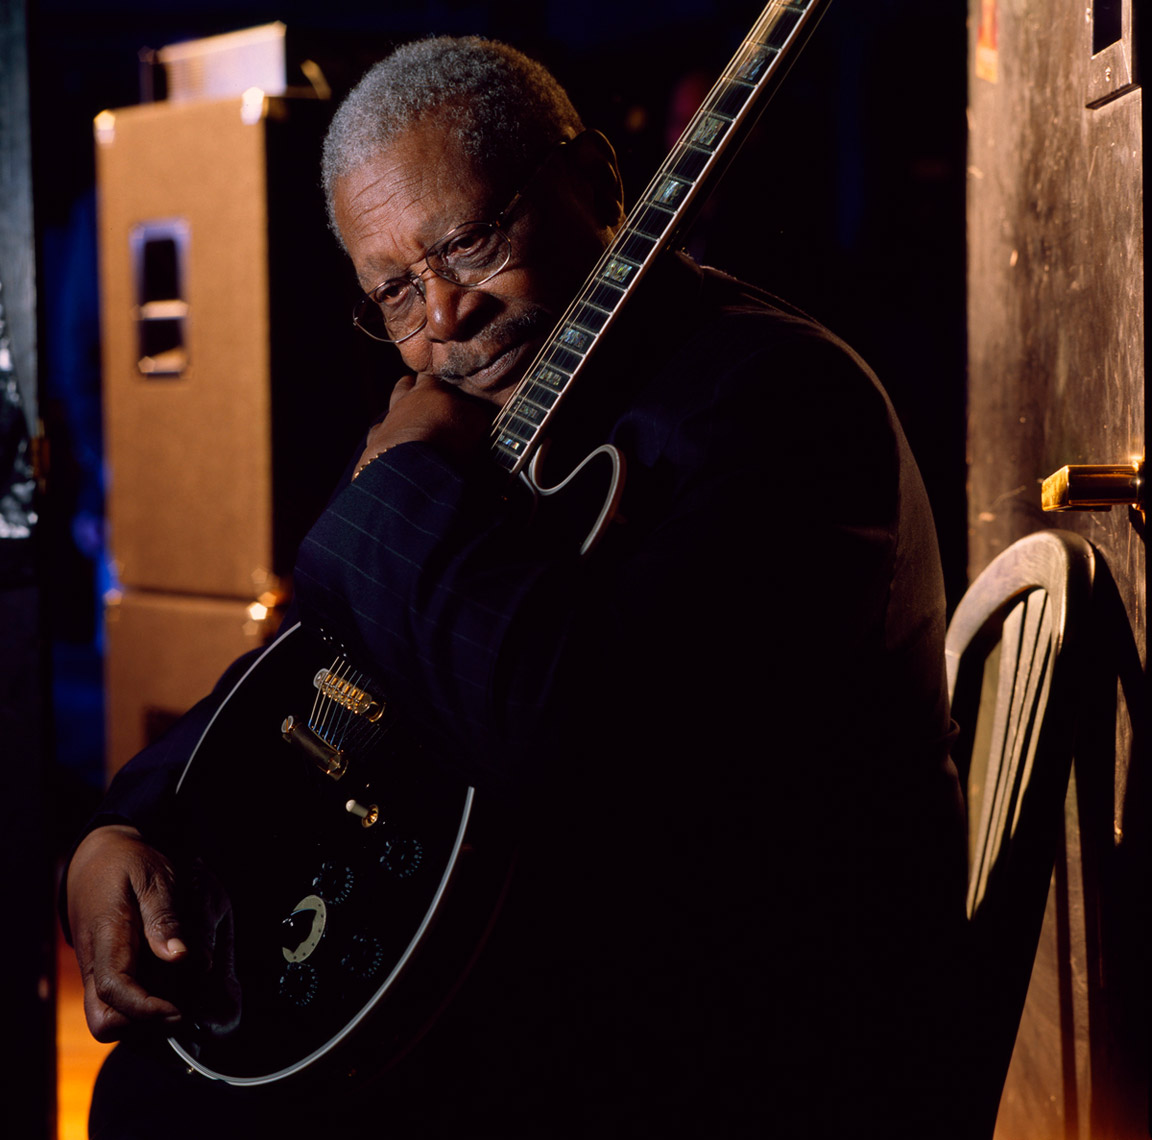 BB KIng and Lucille photo by Monte Isom